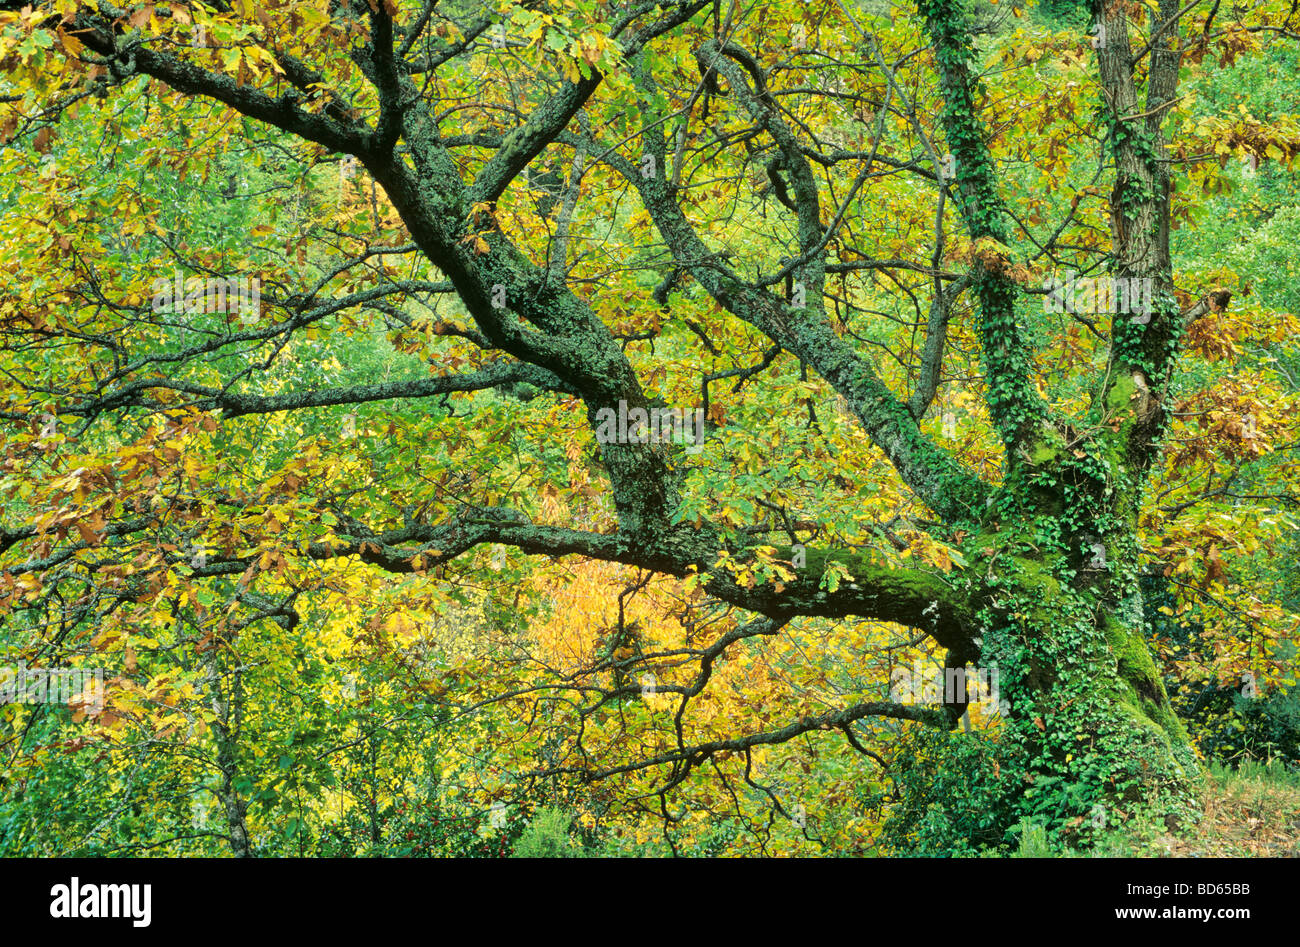 Oak Tree Quercus petraea in the mountains of the Sierra Ancares near Degrada Galicia Spain BEAN AL Pix 0125 - Stock Image